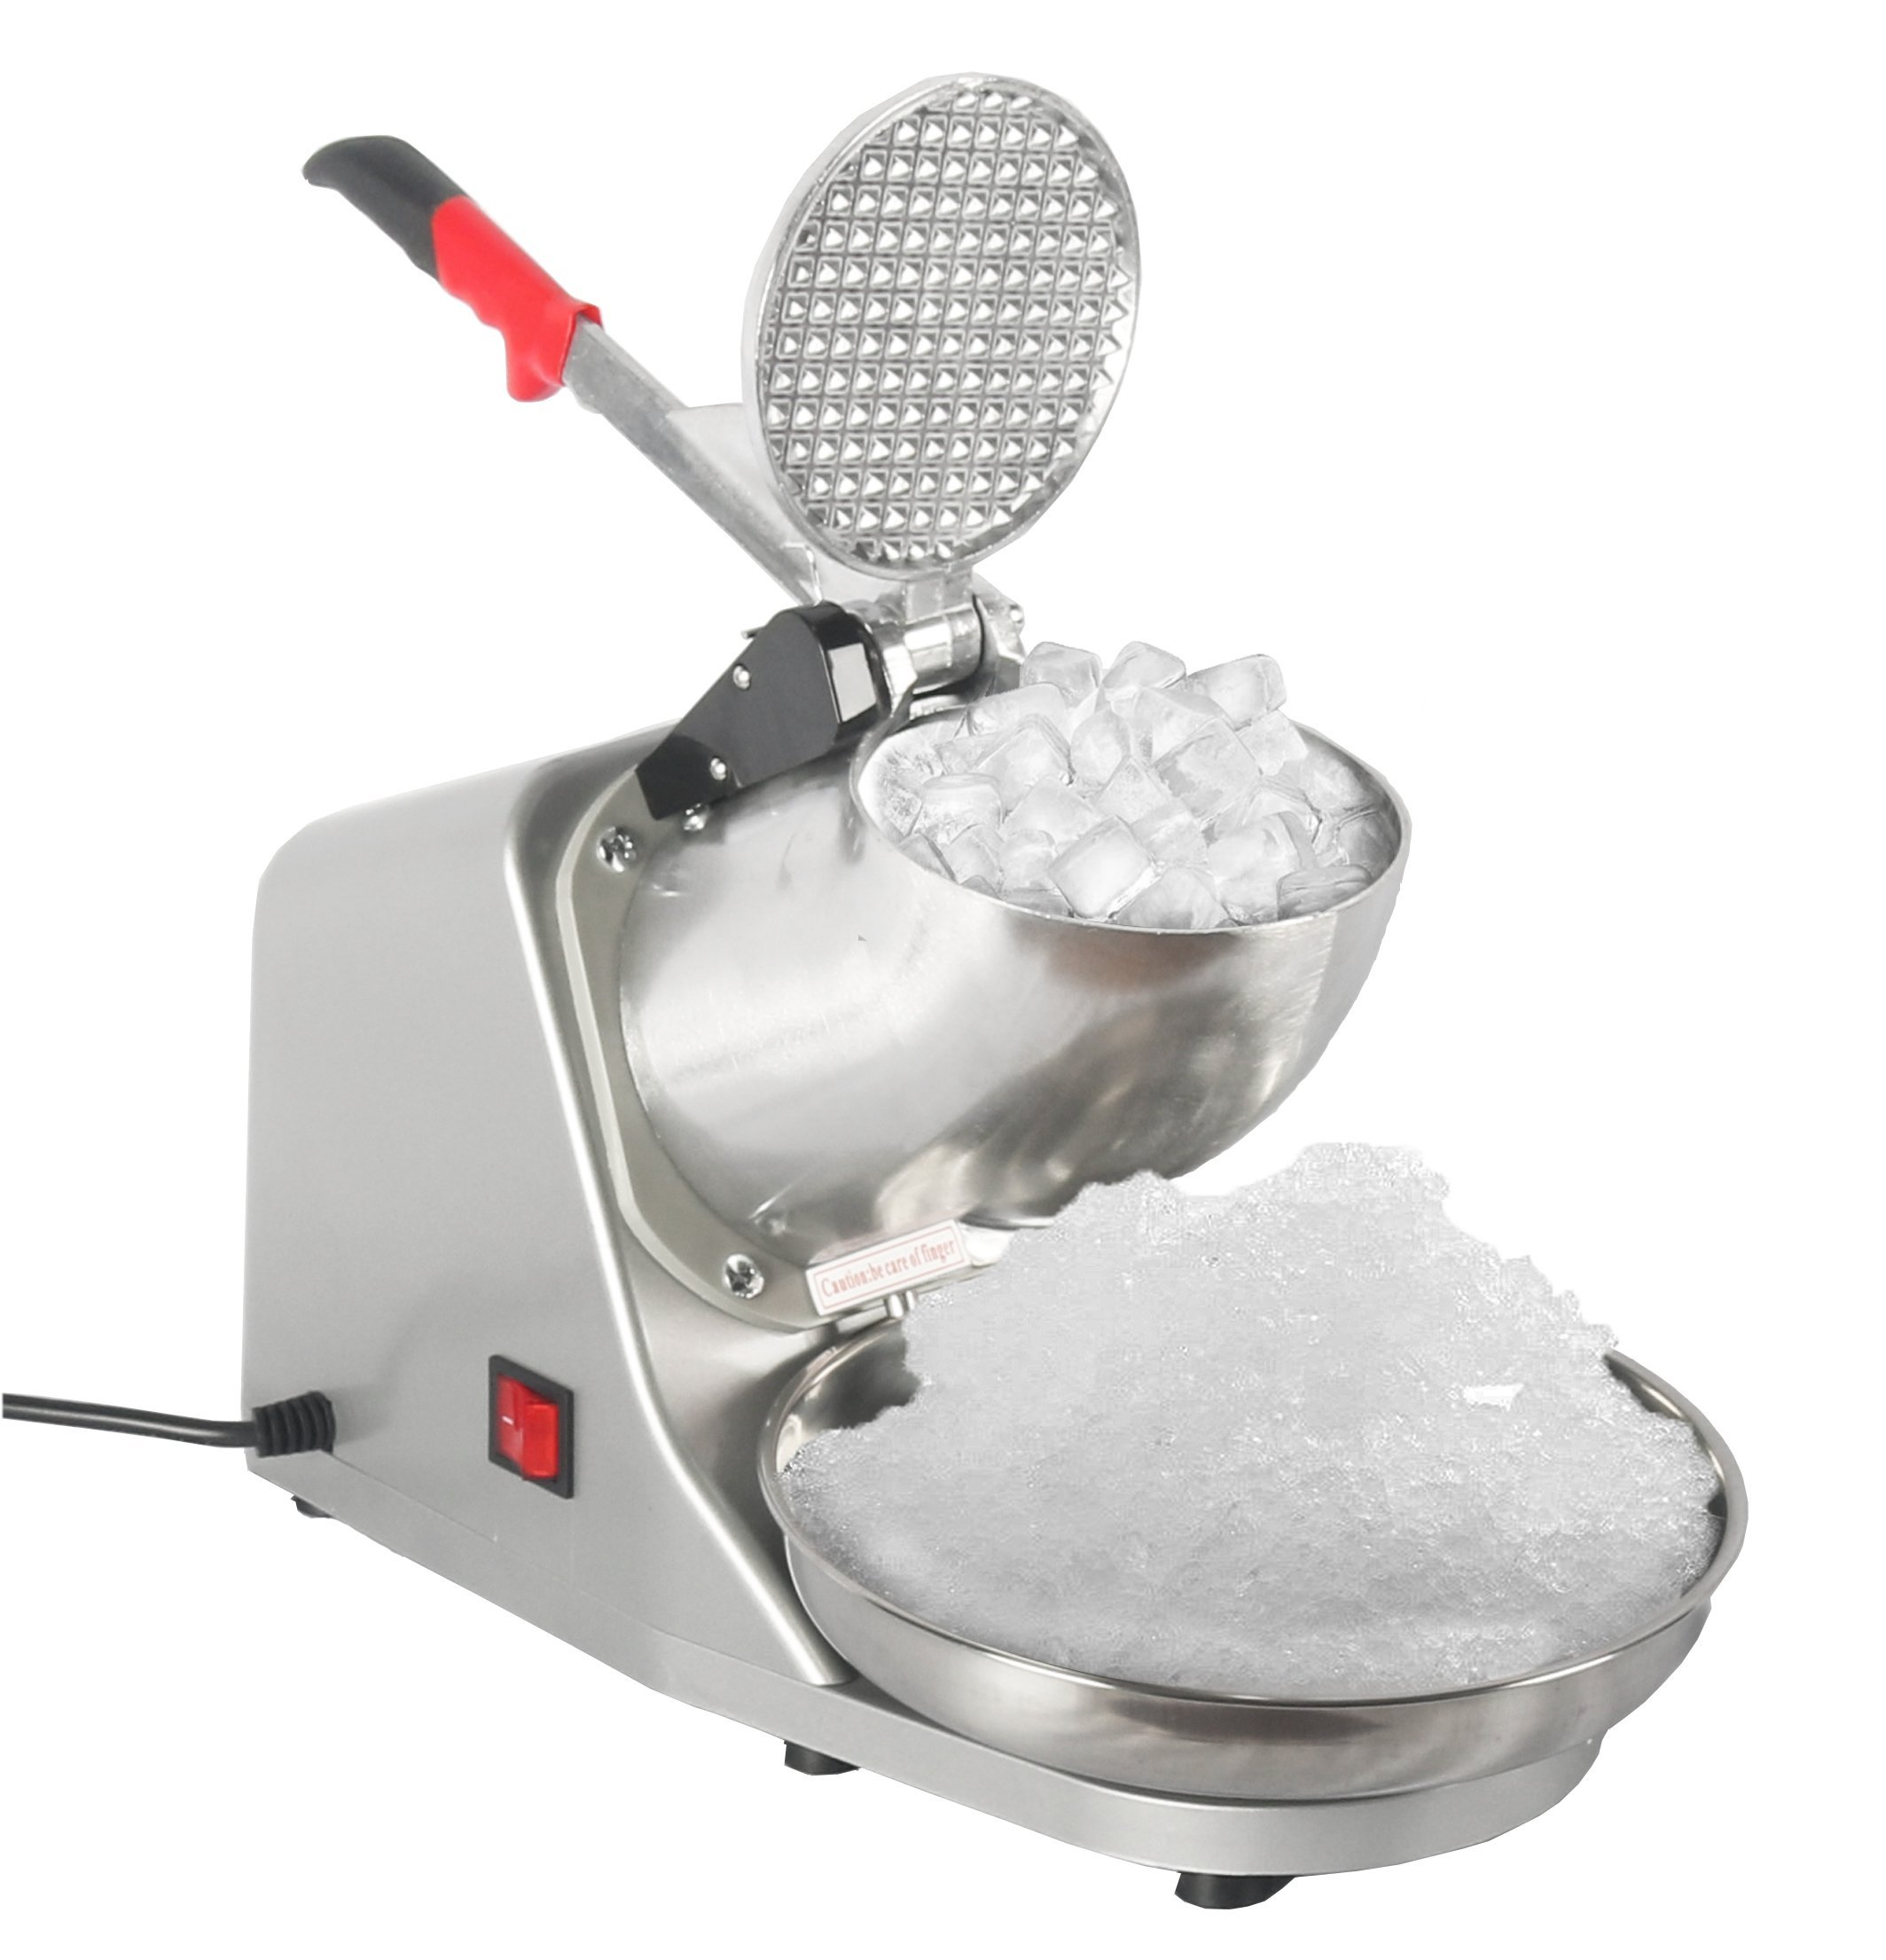 JOO LIFE Electric Ice Shaver Machine, Snow Cone Maker Shaved Ice Machine, Ice Crushers Home Commercial Use Silver 143lbs/hr (300W)